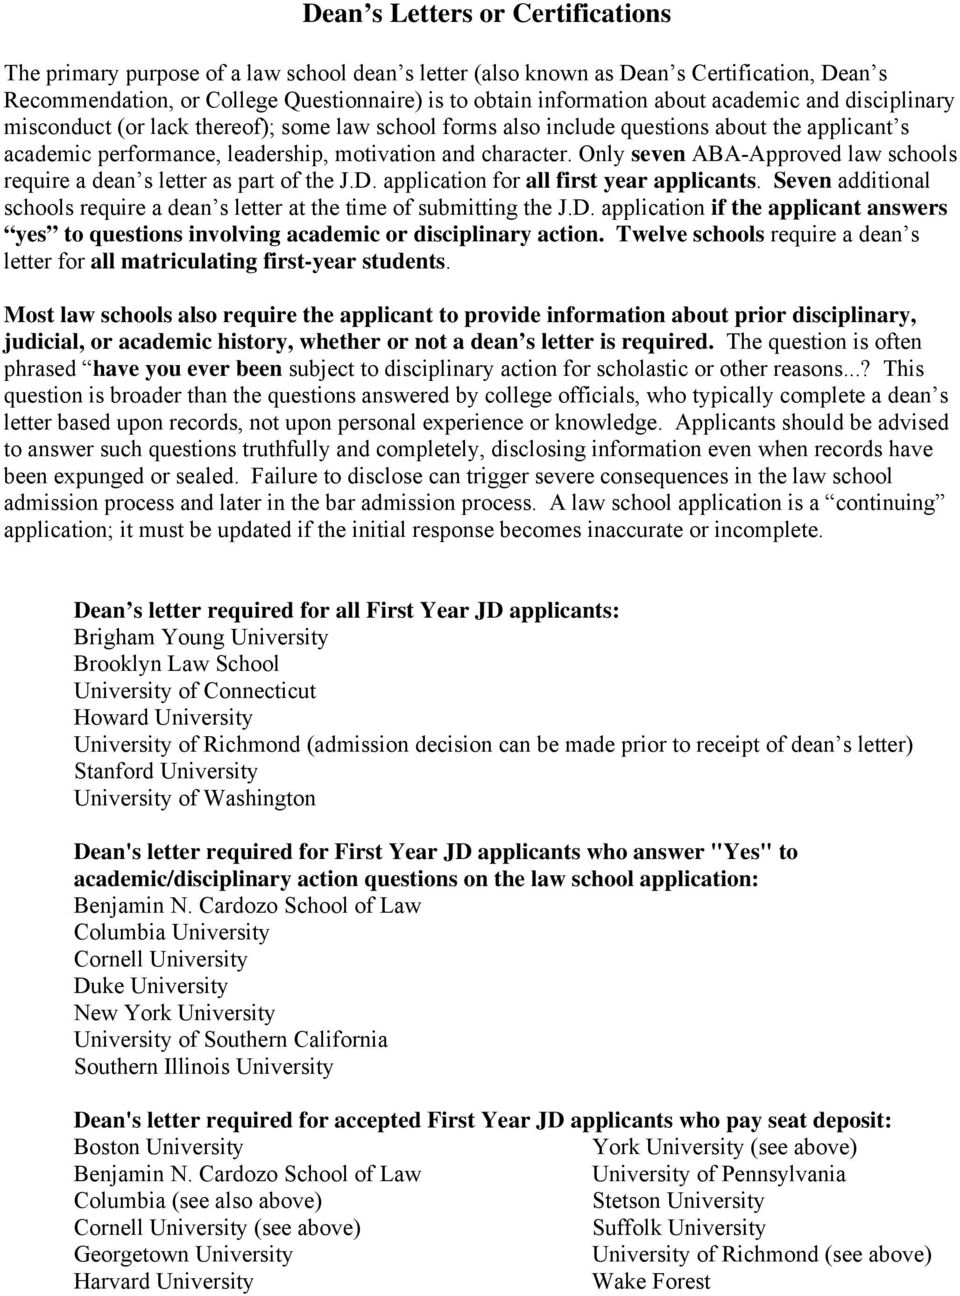 how to apply to law school pdf only seven aba approved law schools require a dean s letter as part of the